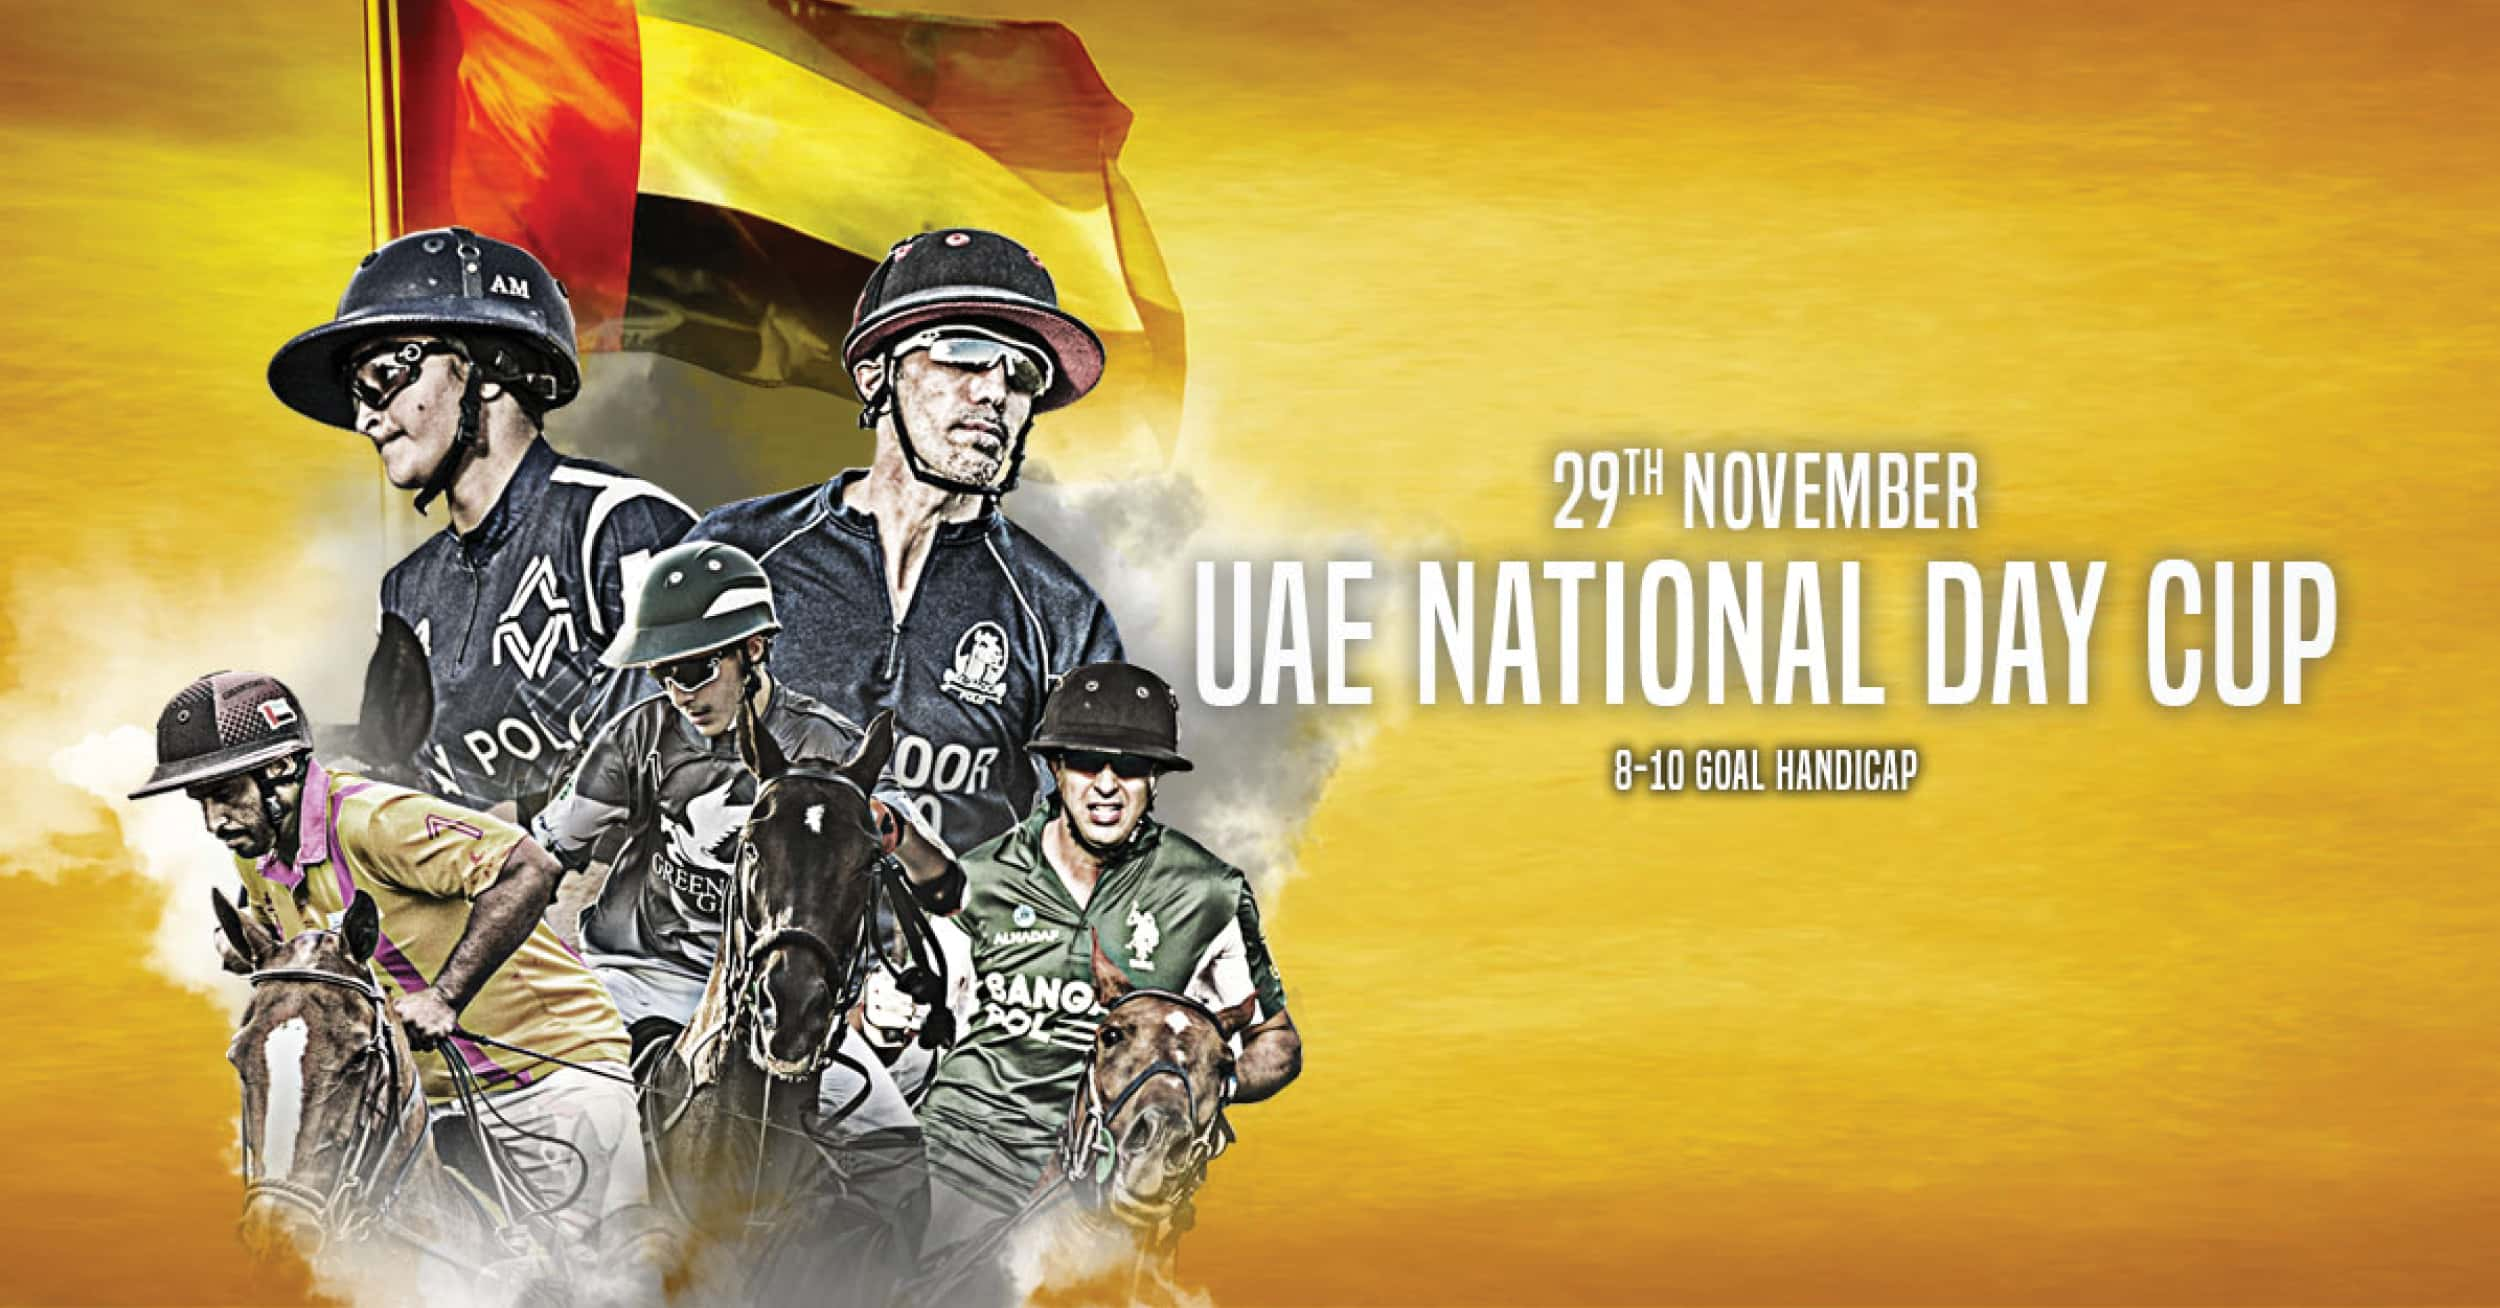 UAE National Day Cup 2019